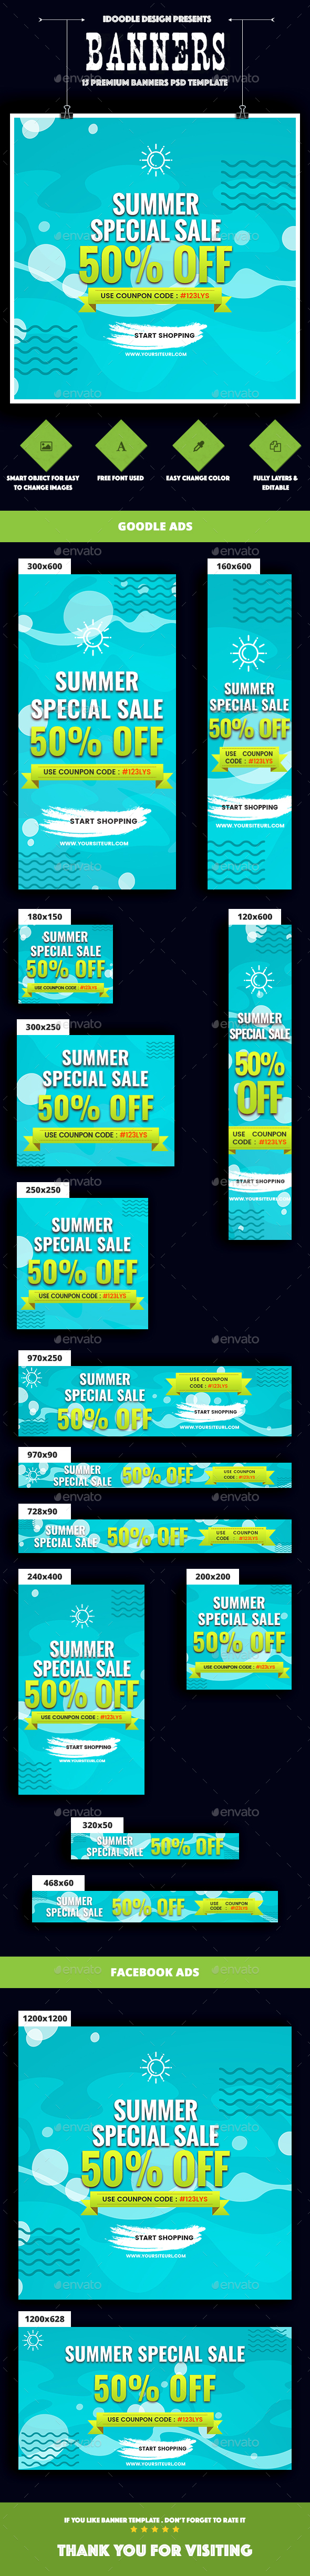 Summer Sale Banners Ad - Banners & Ads Web Elements